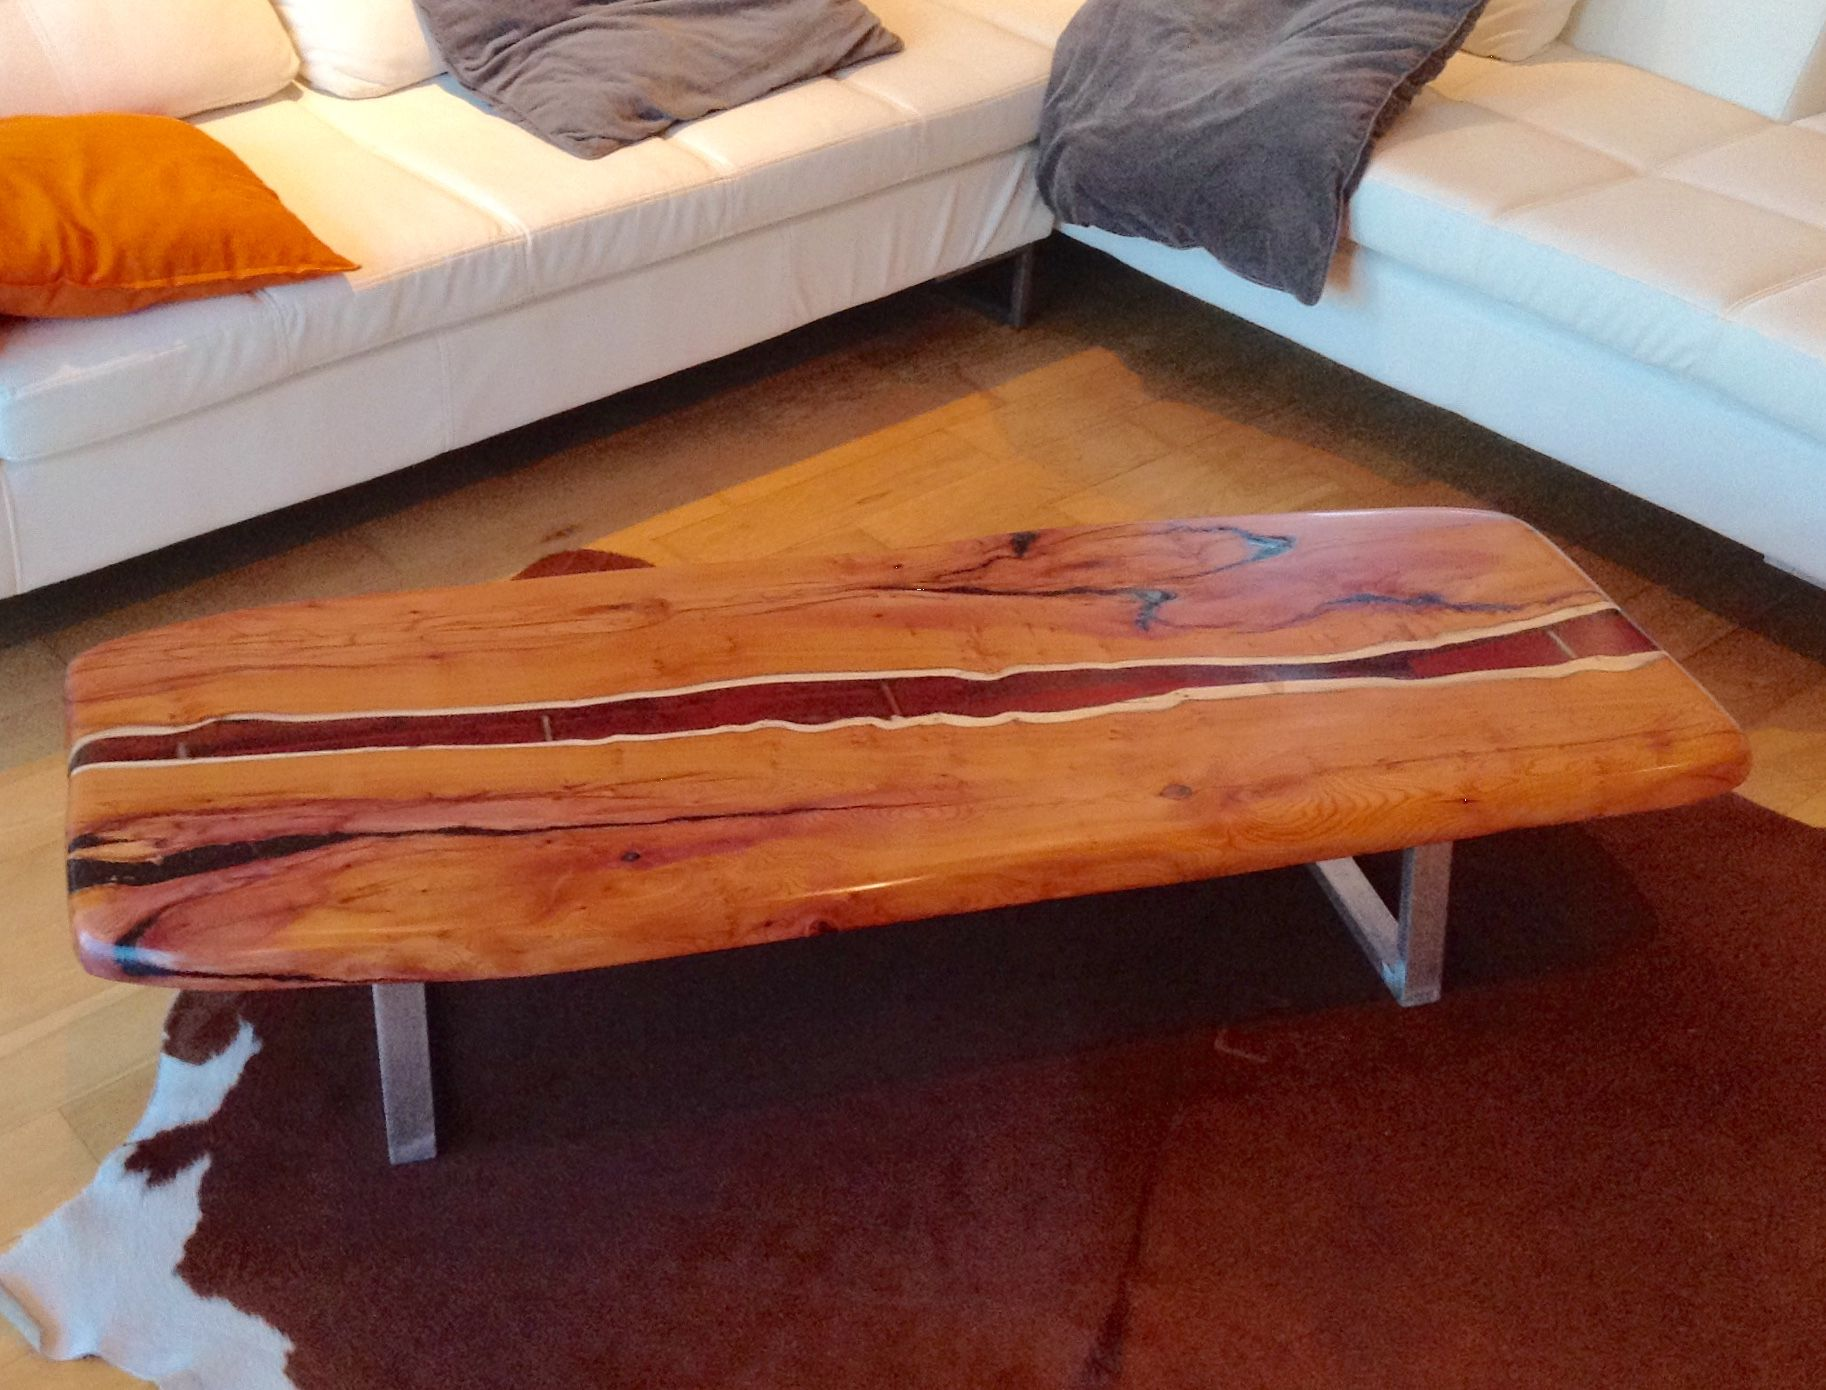 Live Edge Yew Coffee Table With A River Of Dark Amber